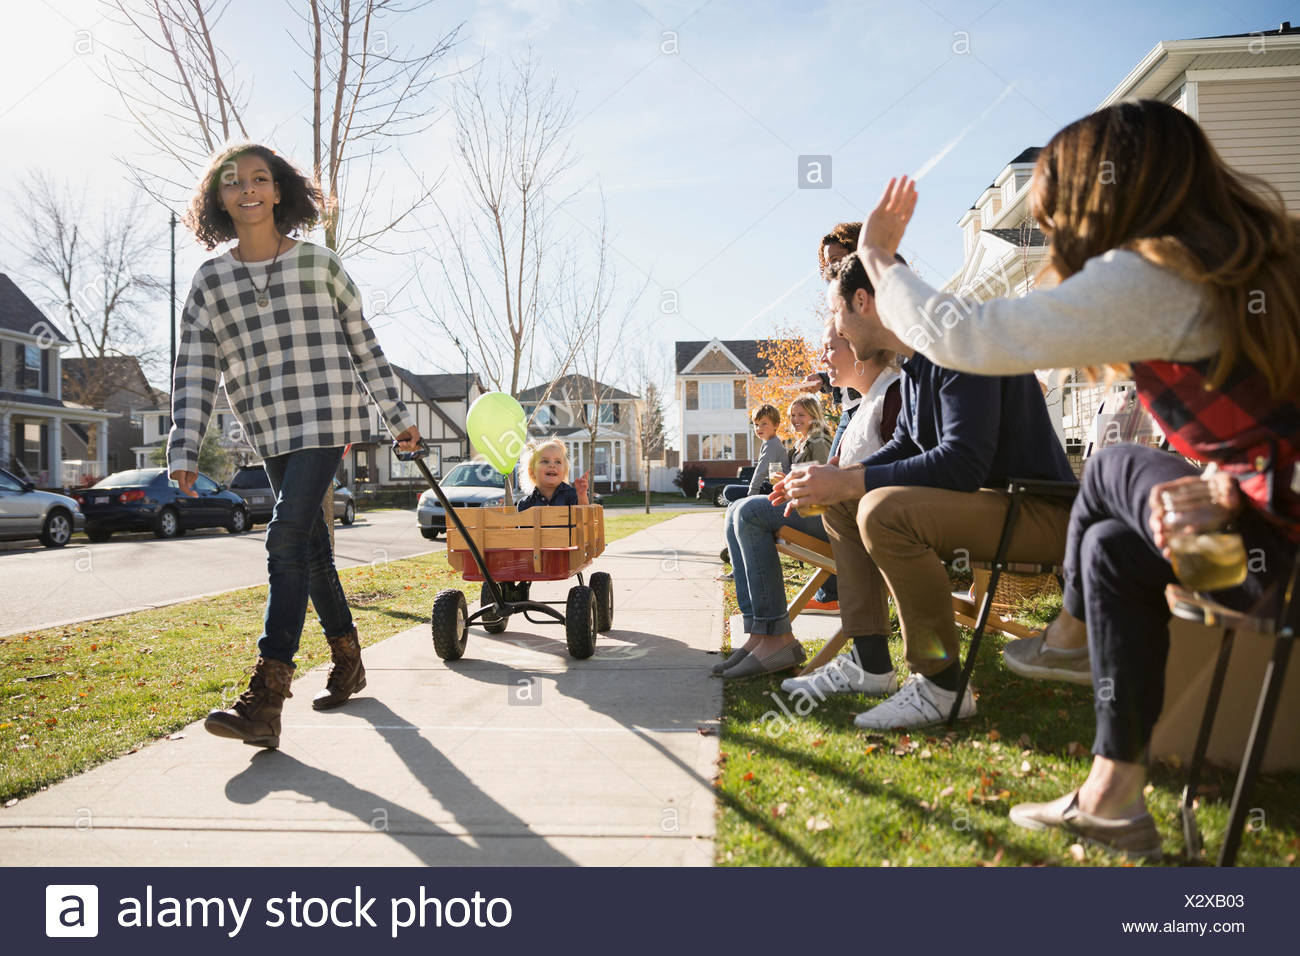 Neighbors waving at girl pulling friend in wagon - Stock Image